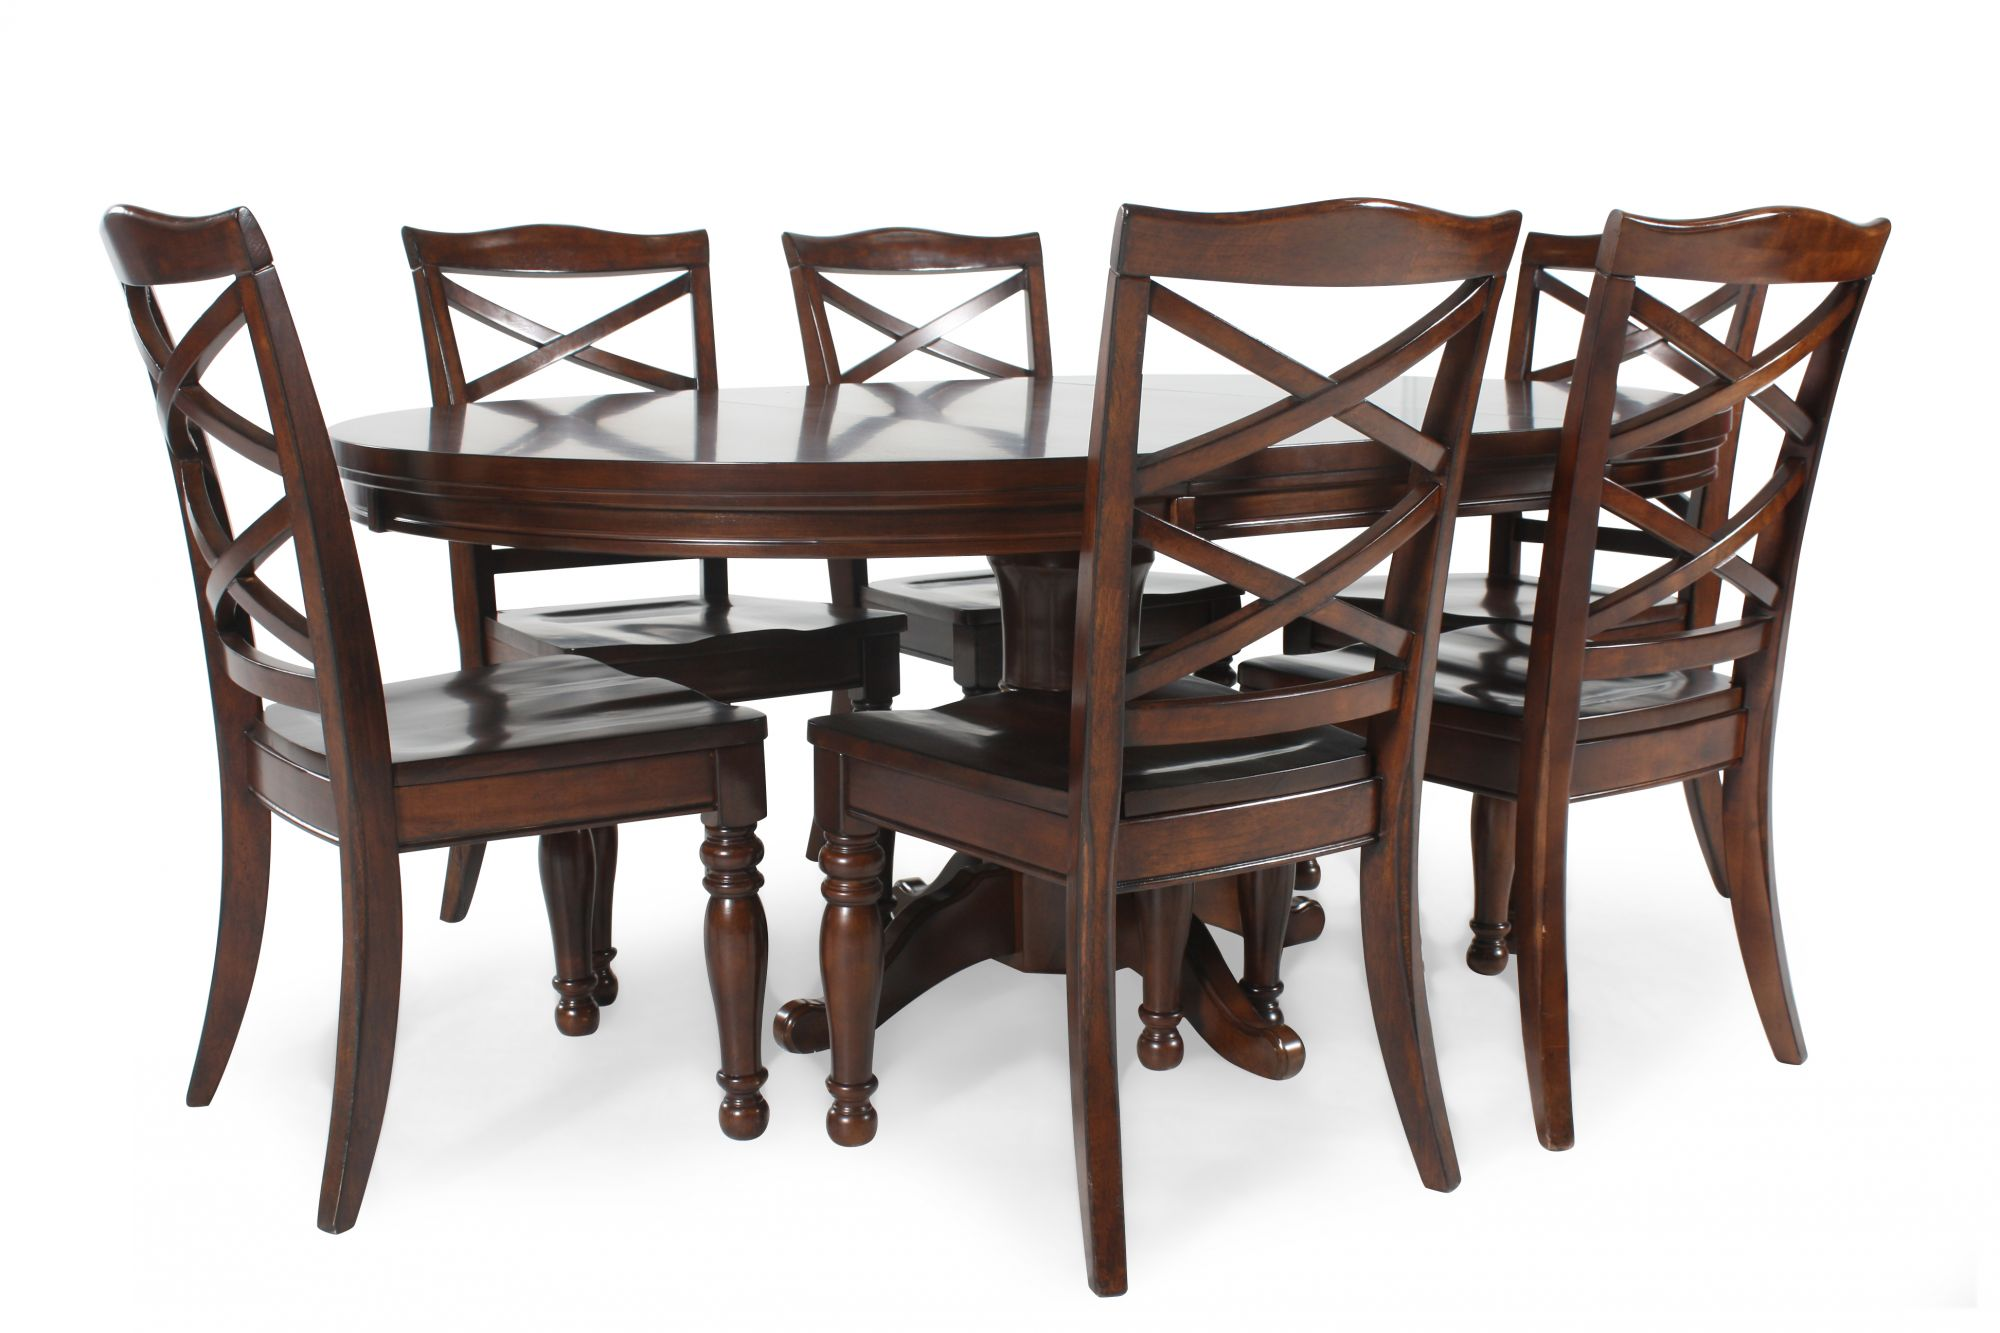 mathis brothers dining room sets | Ashley Porter Five-Piece Round Dining Set | Mathis ...